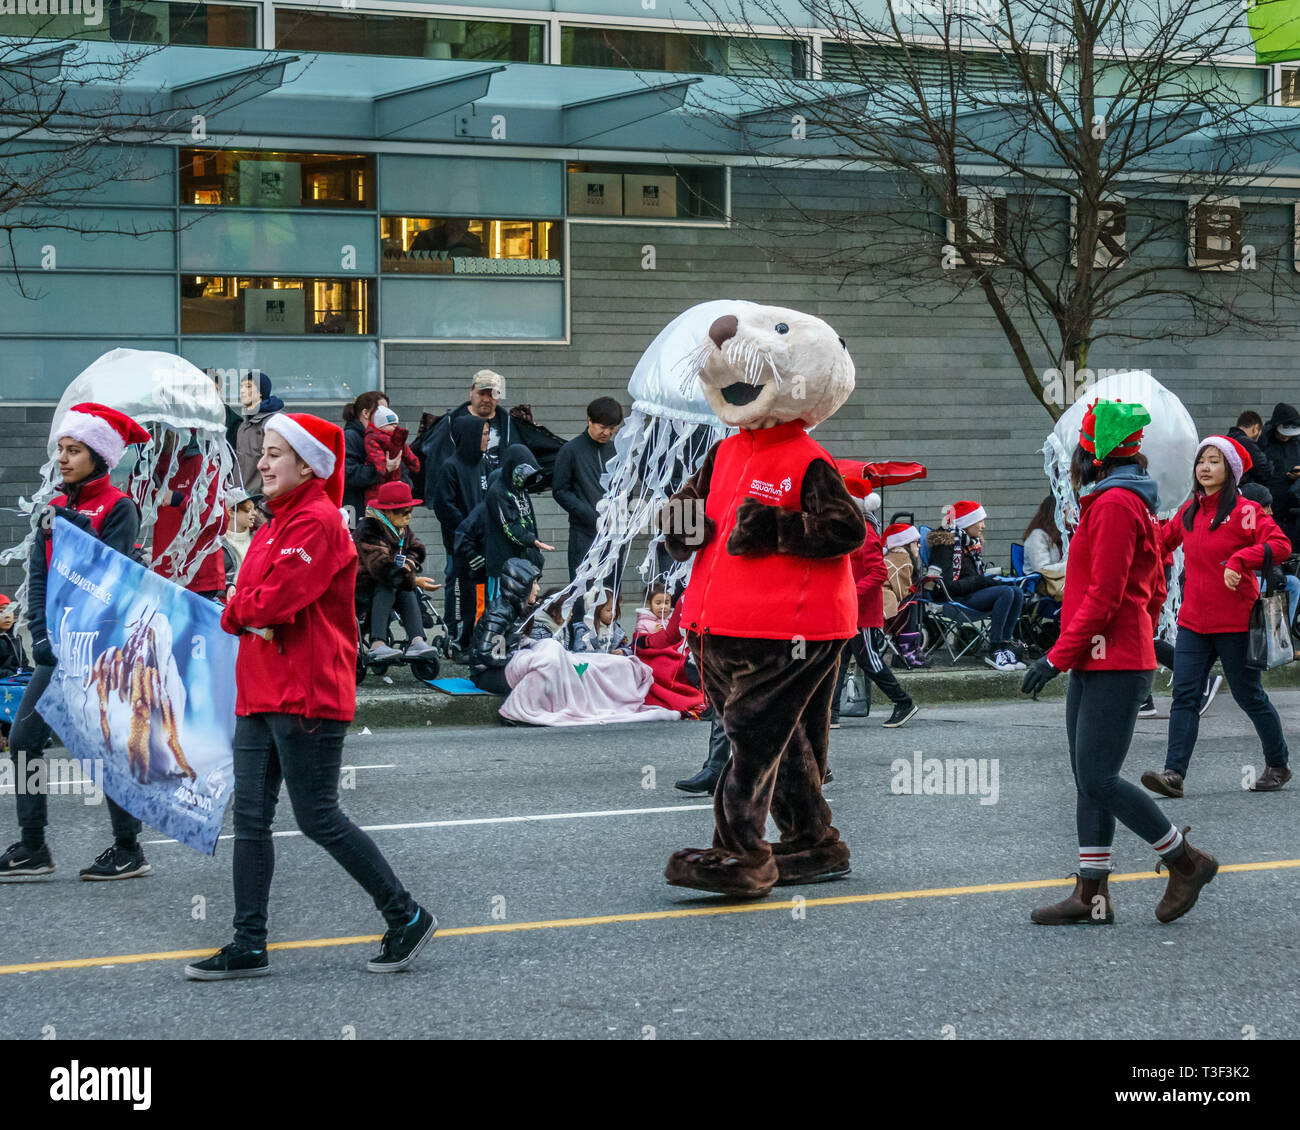 Vancouver Christmas Parade.Vancouver Canada December 2 2018 People From Aquarium